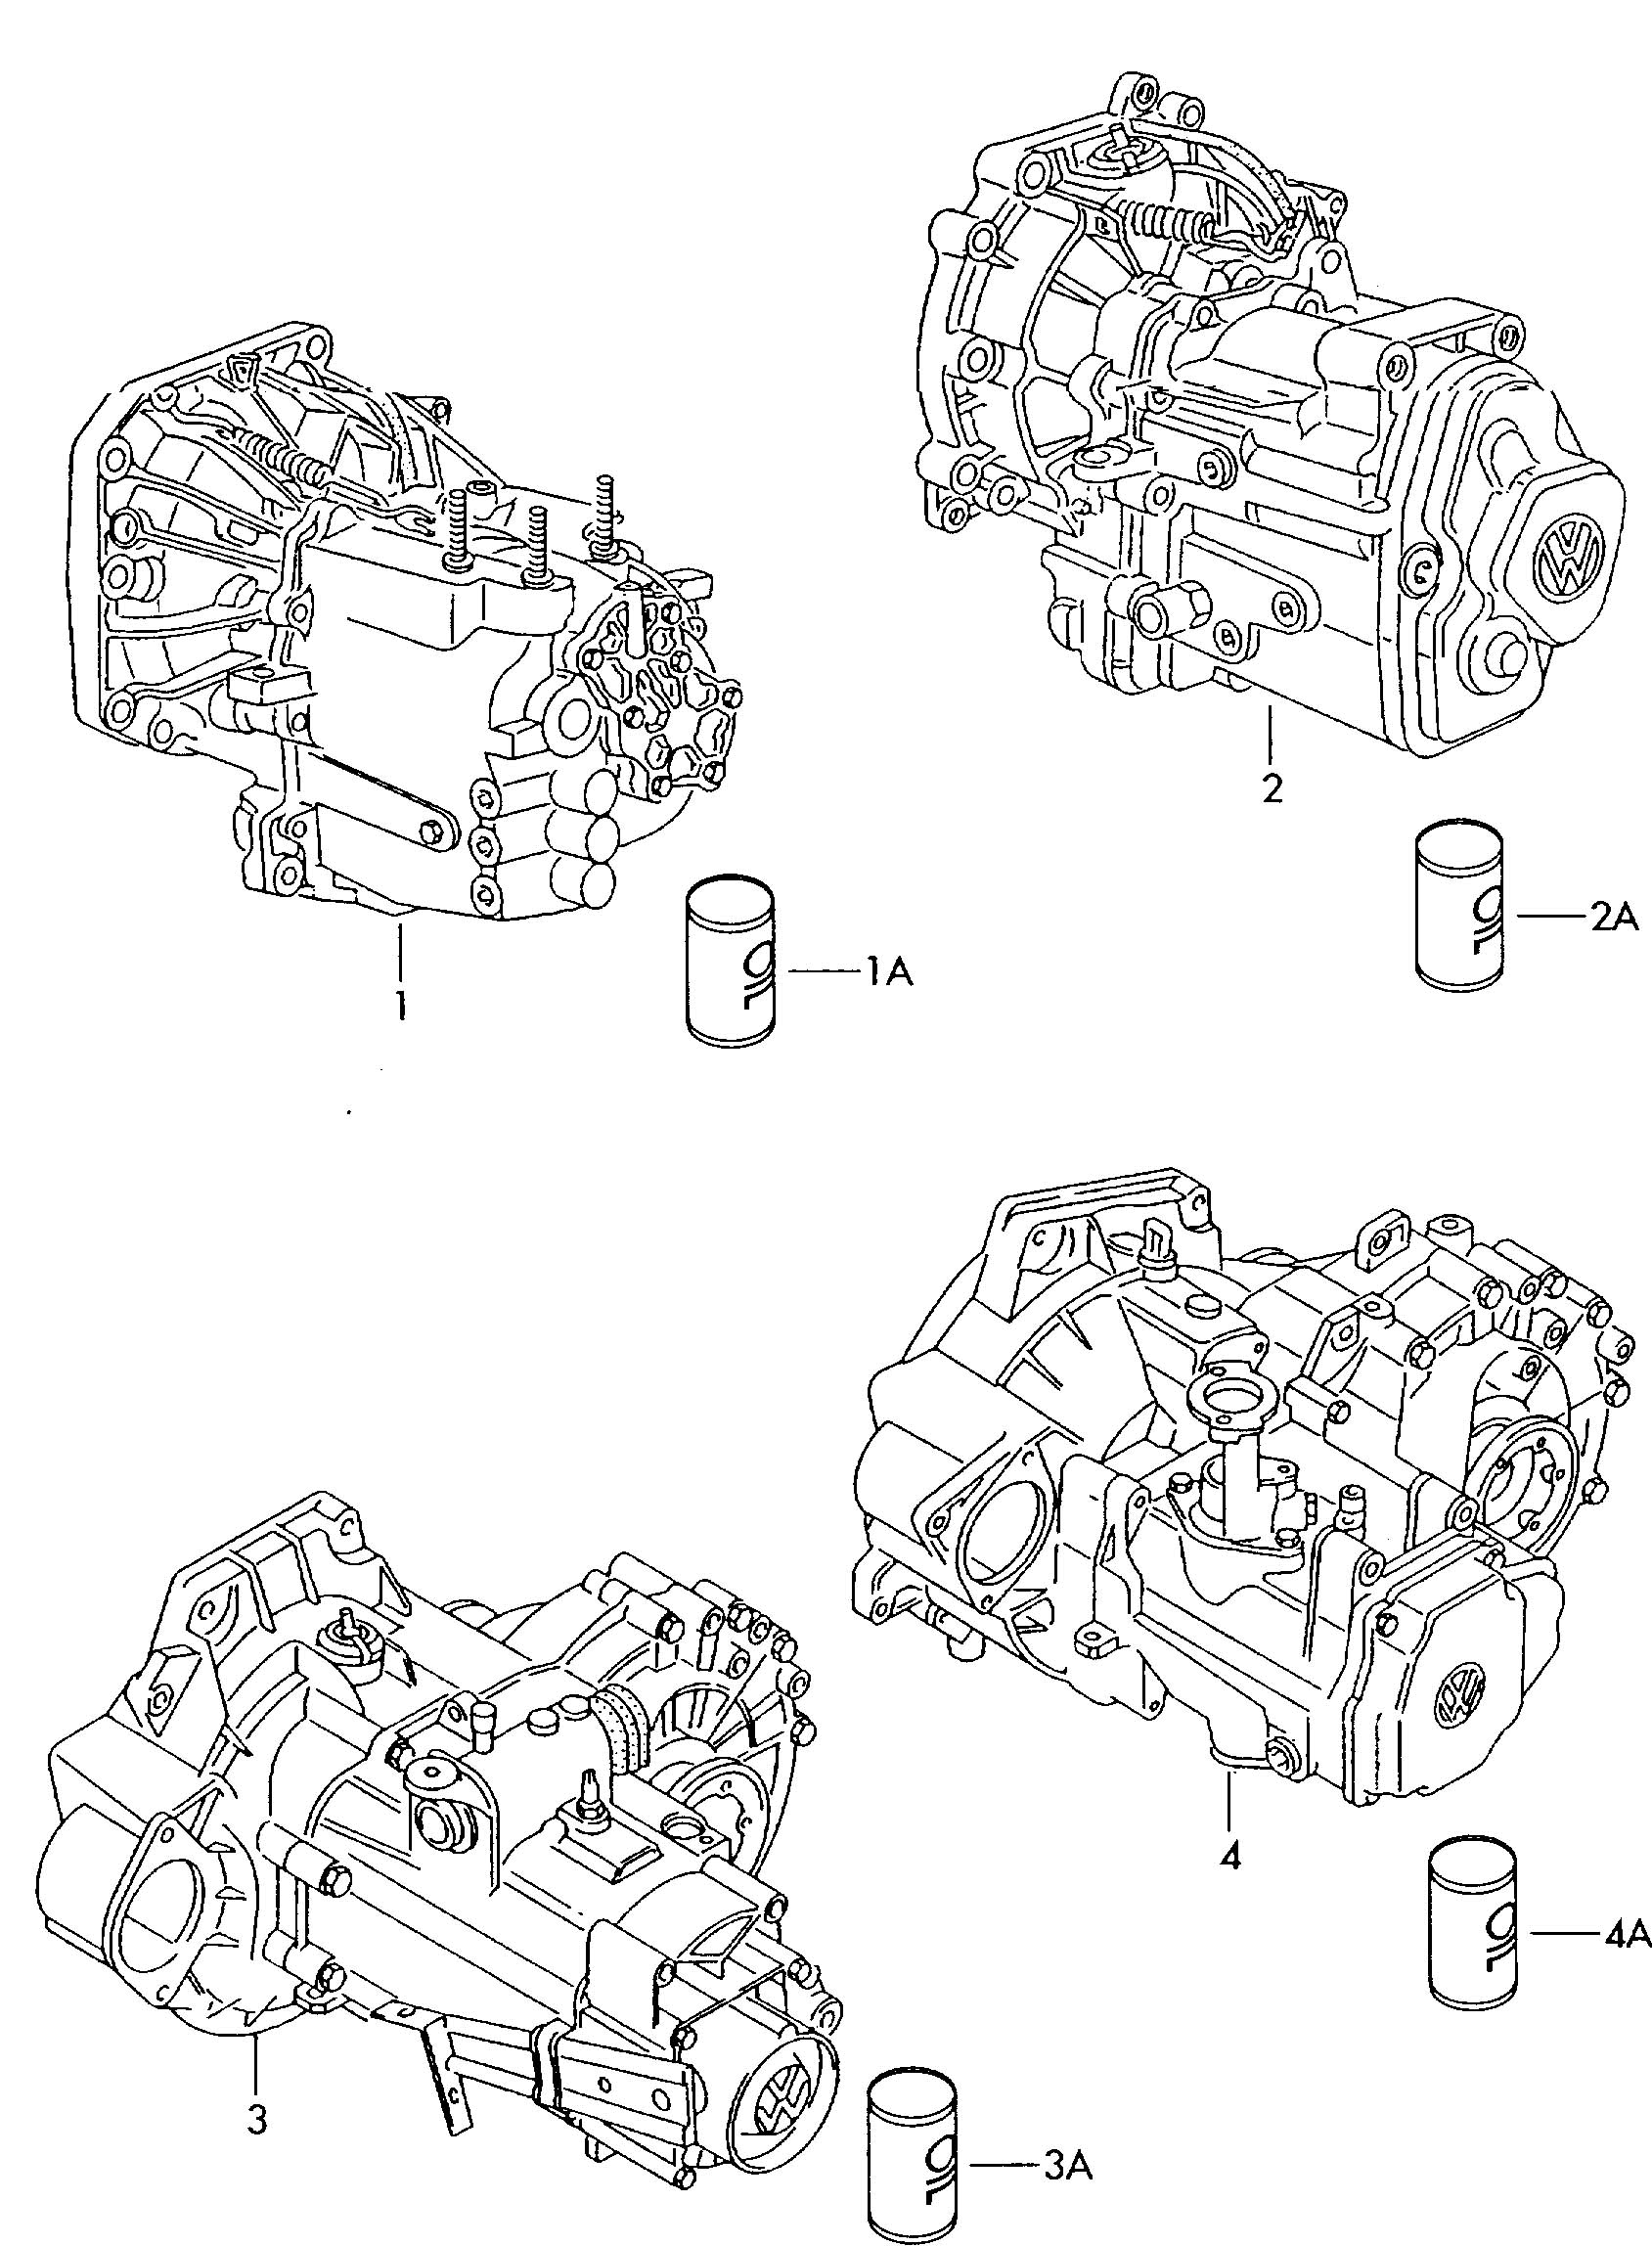 vw golf manual transmission problems